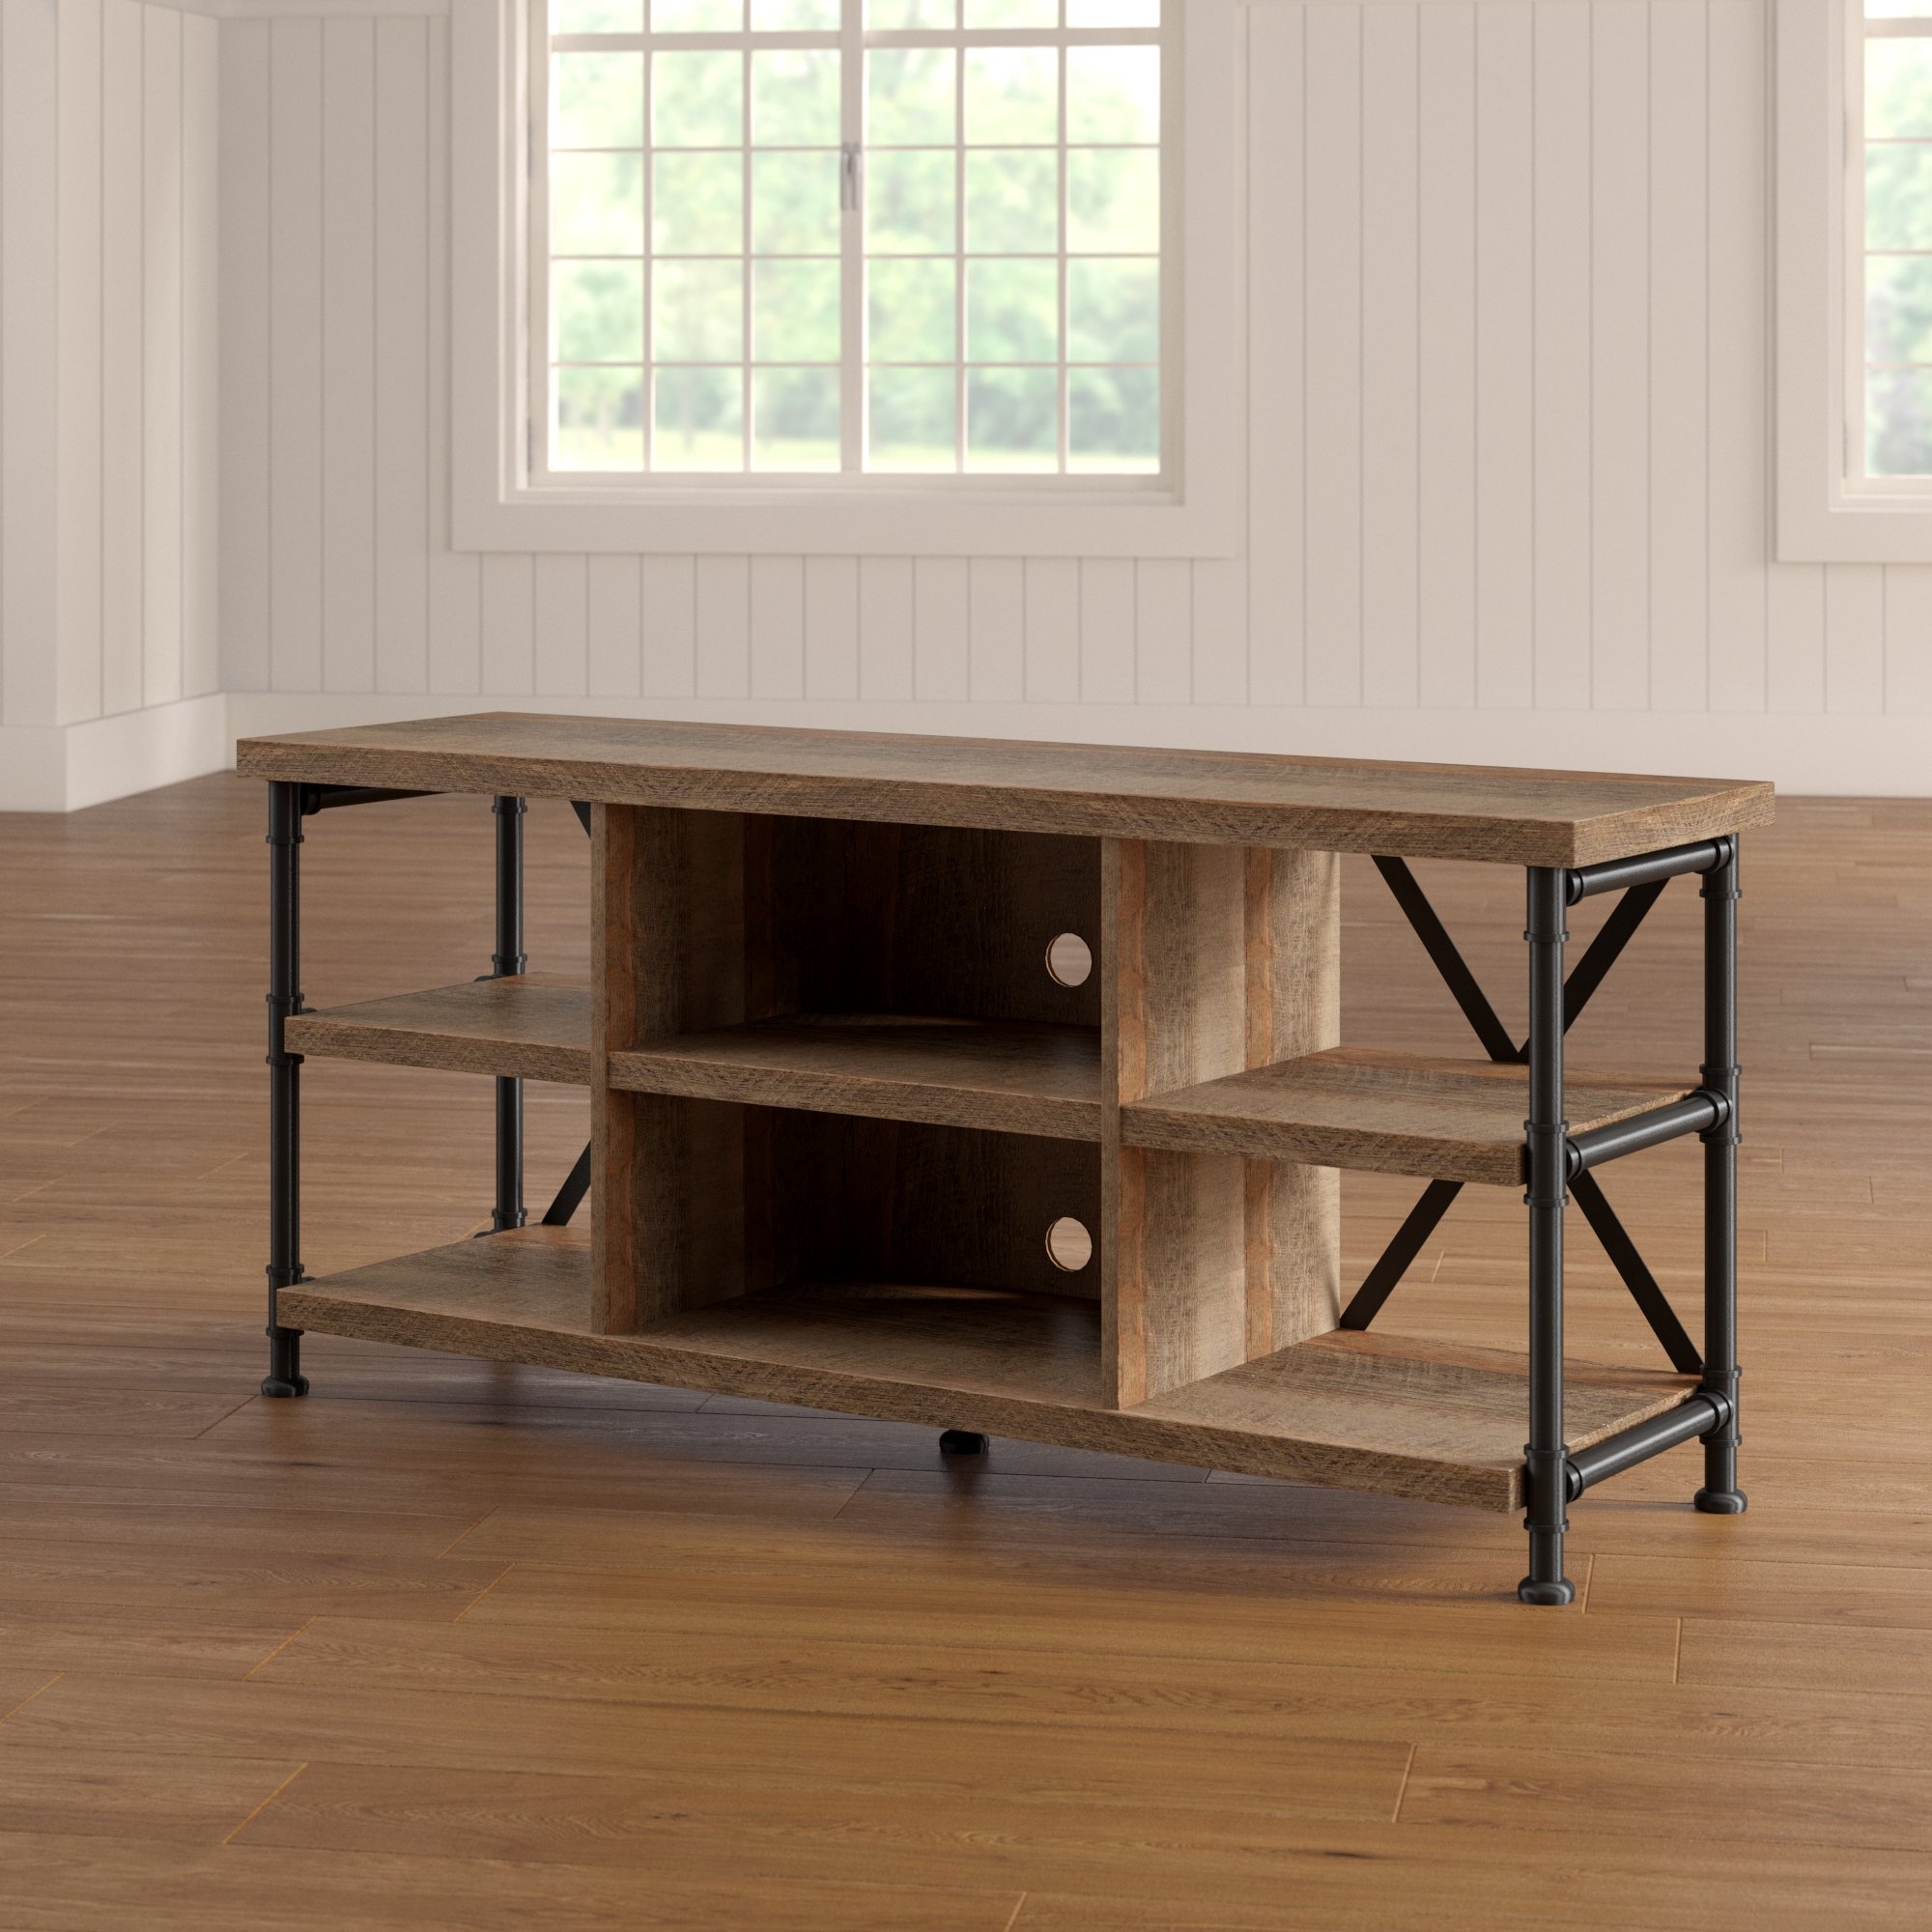 Industrial Tv Stands You'll Love | Wayfair in Walton Grey 60 Inch Tv Stands (Image 17 of 30)